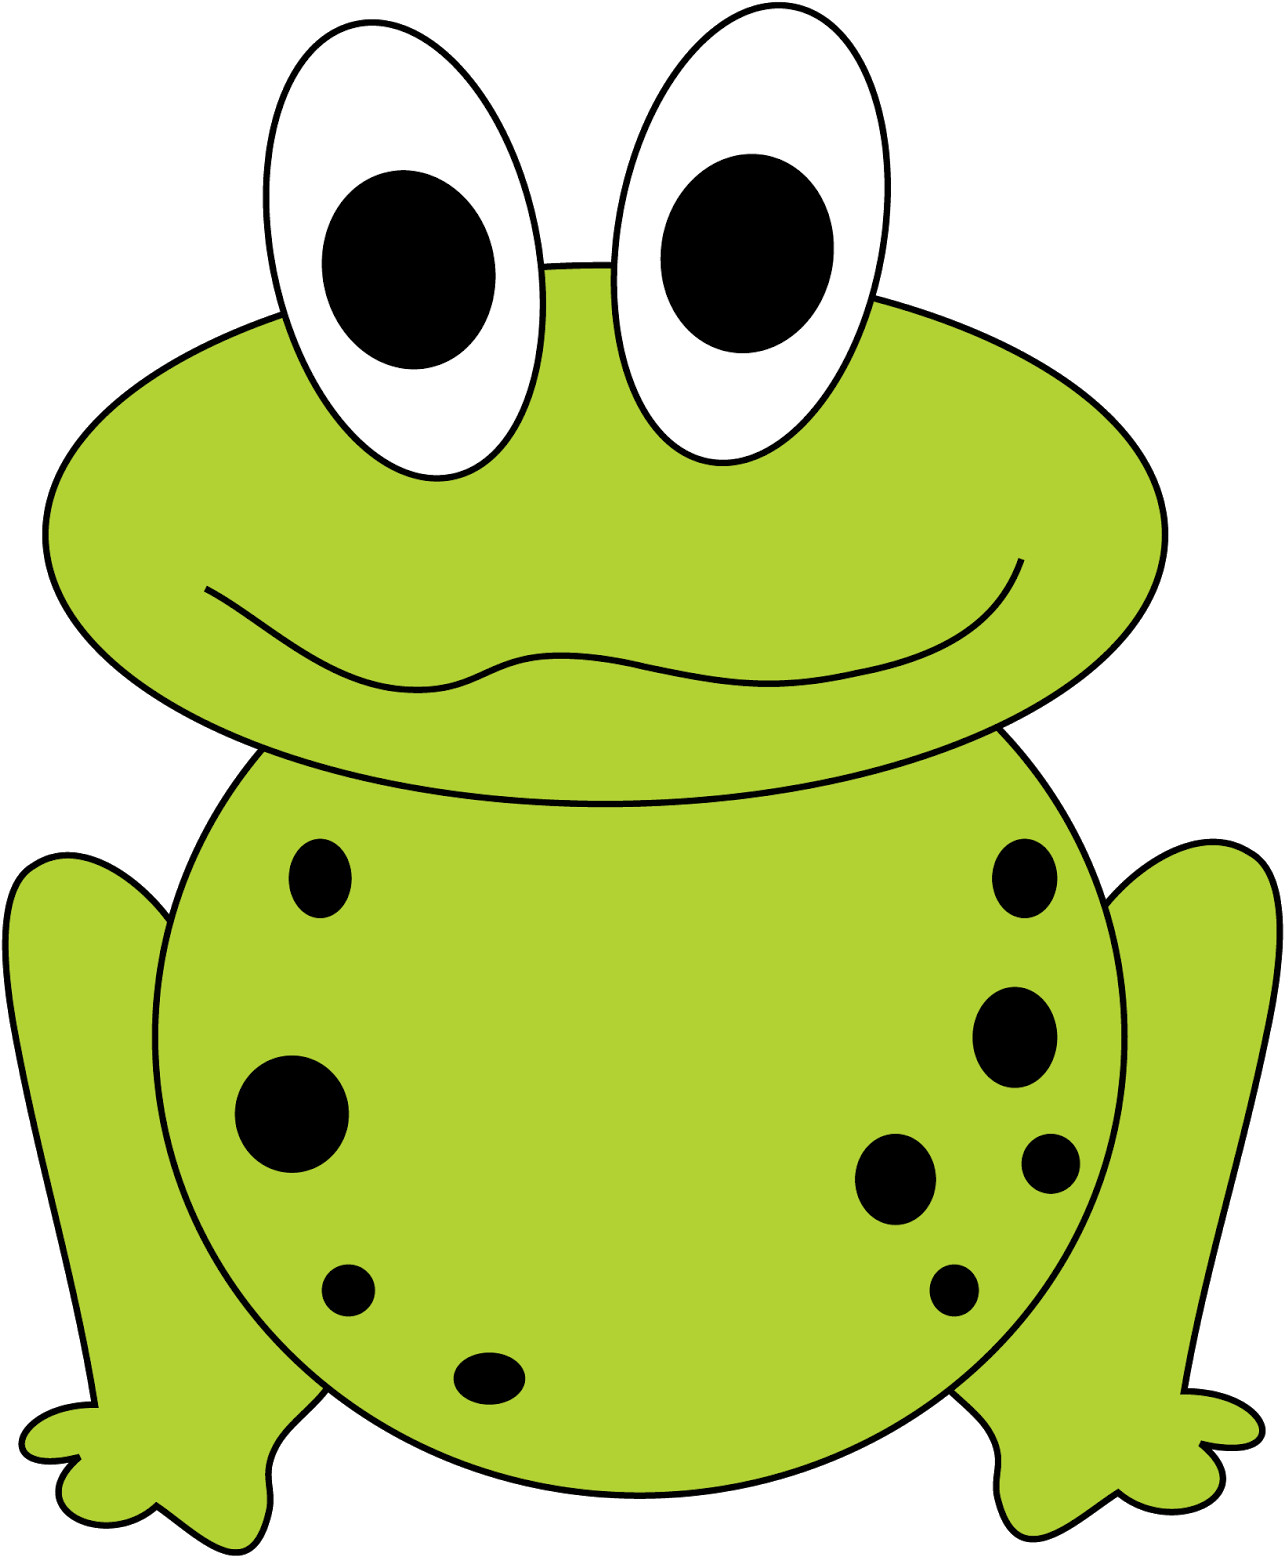 Frog Silhouette PNG and Frog Silhouette Transparent Clipart Free Download.  - CleanPNG / KissPNG